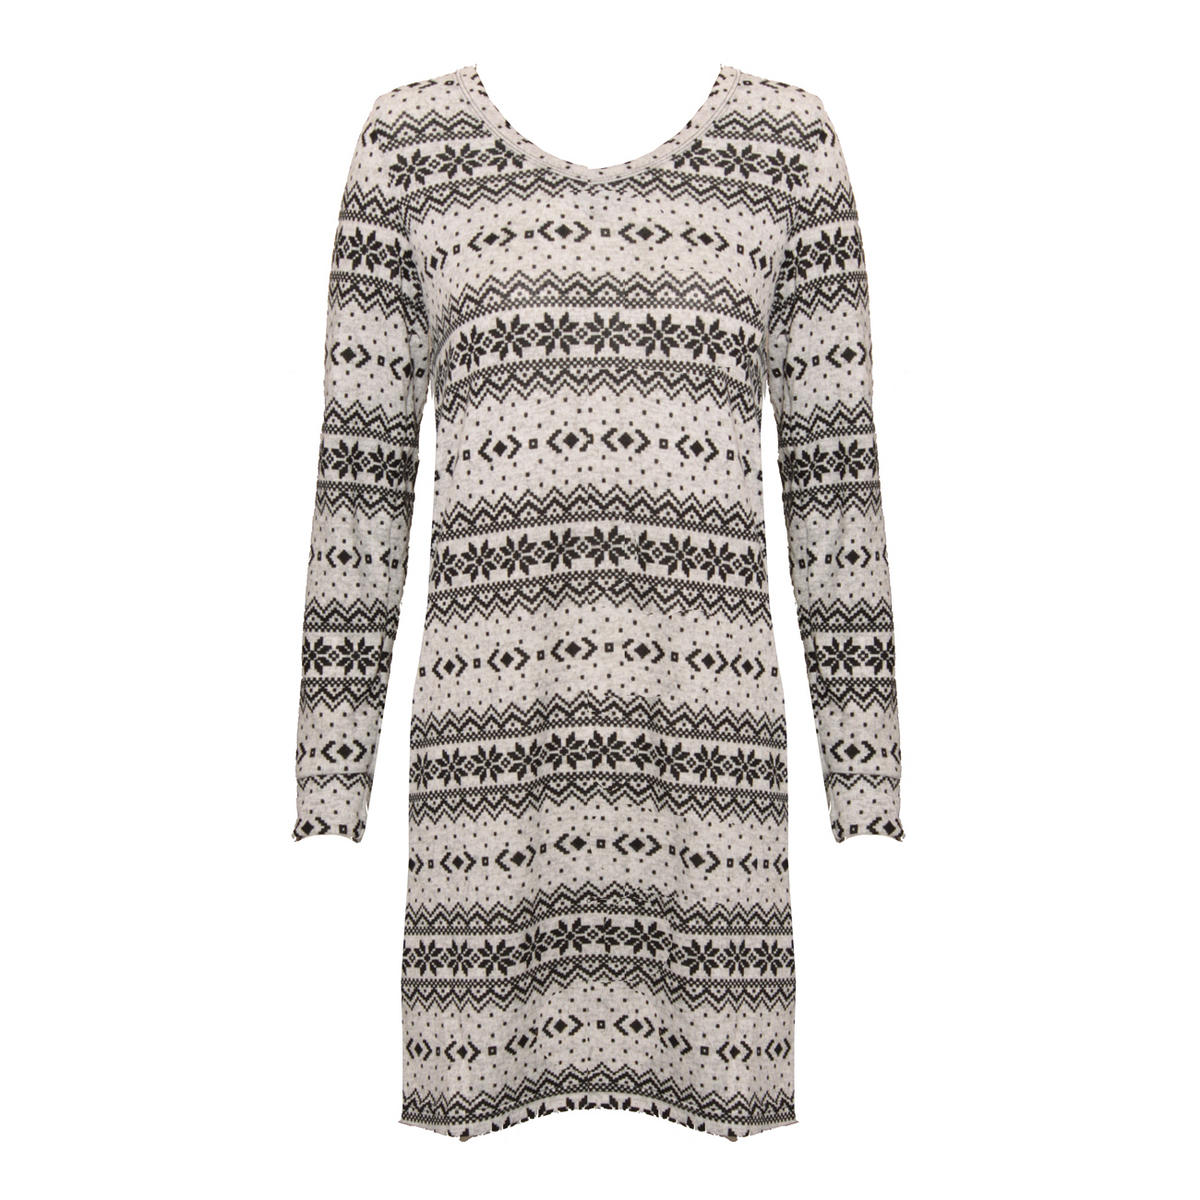 Alpine Print Knitted Jumper Dress  Preview